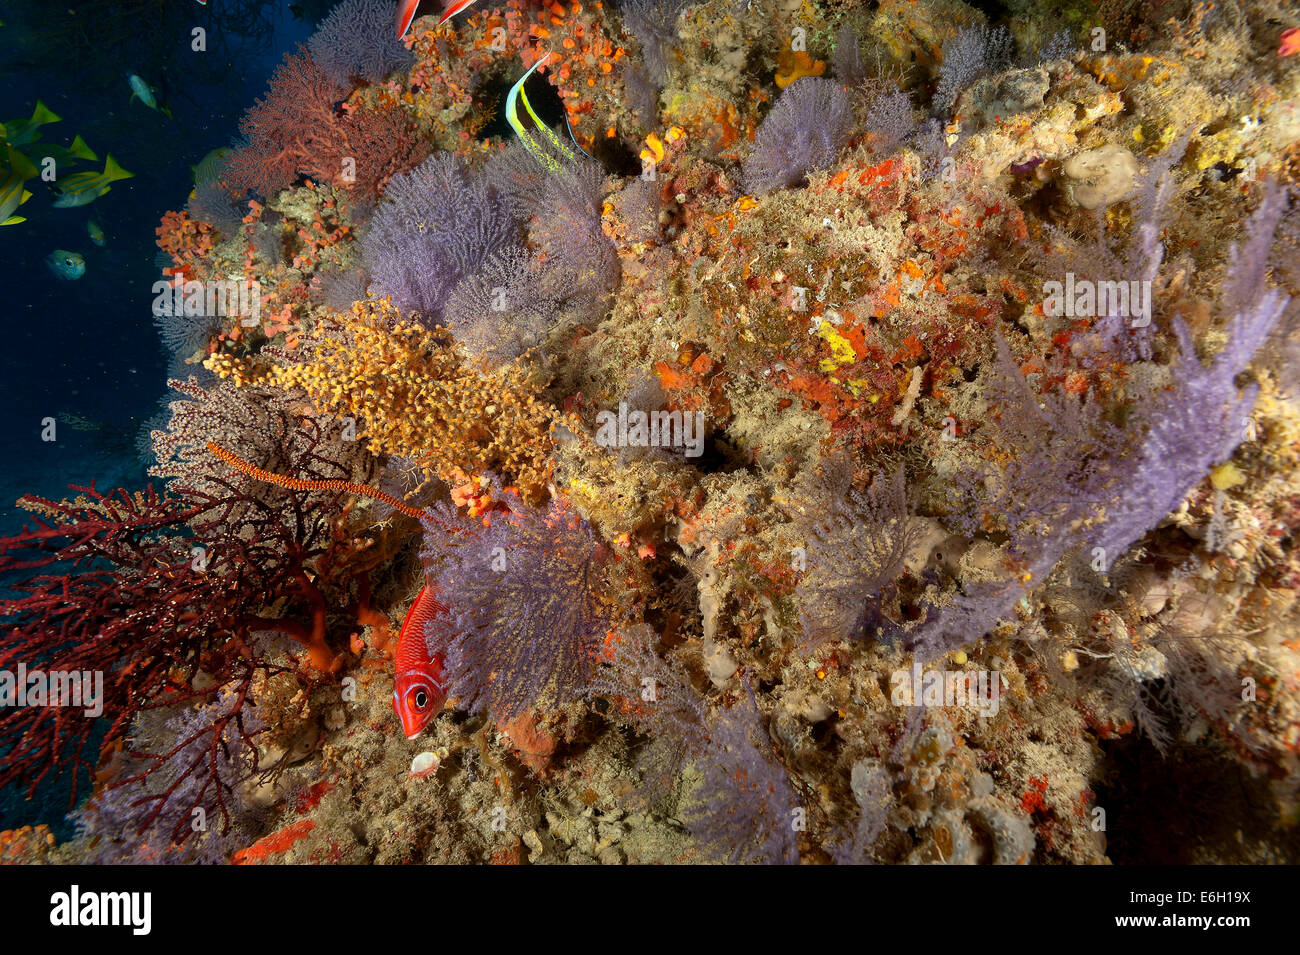 Sea fans in Maldives, Indian Ocean - Stock Image